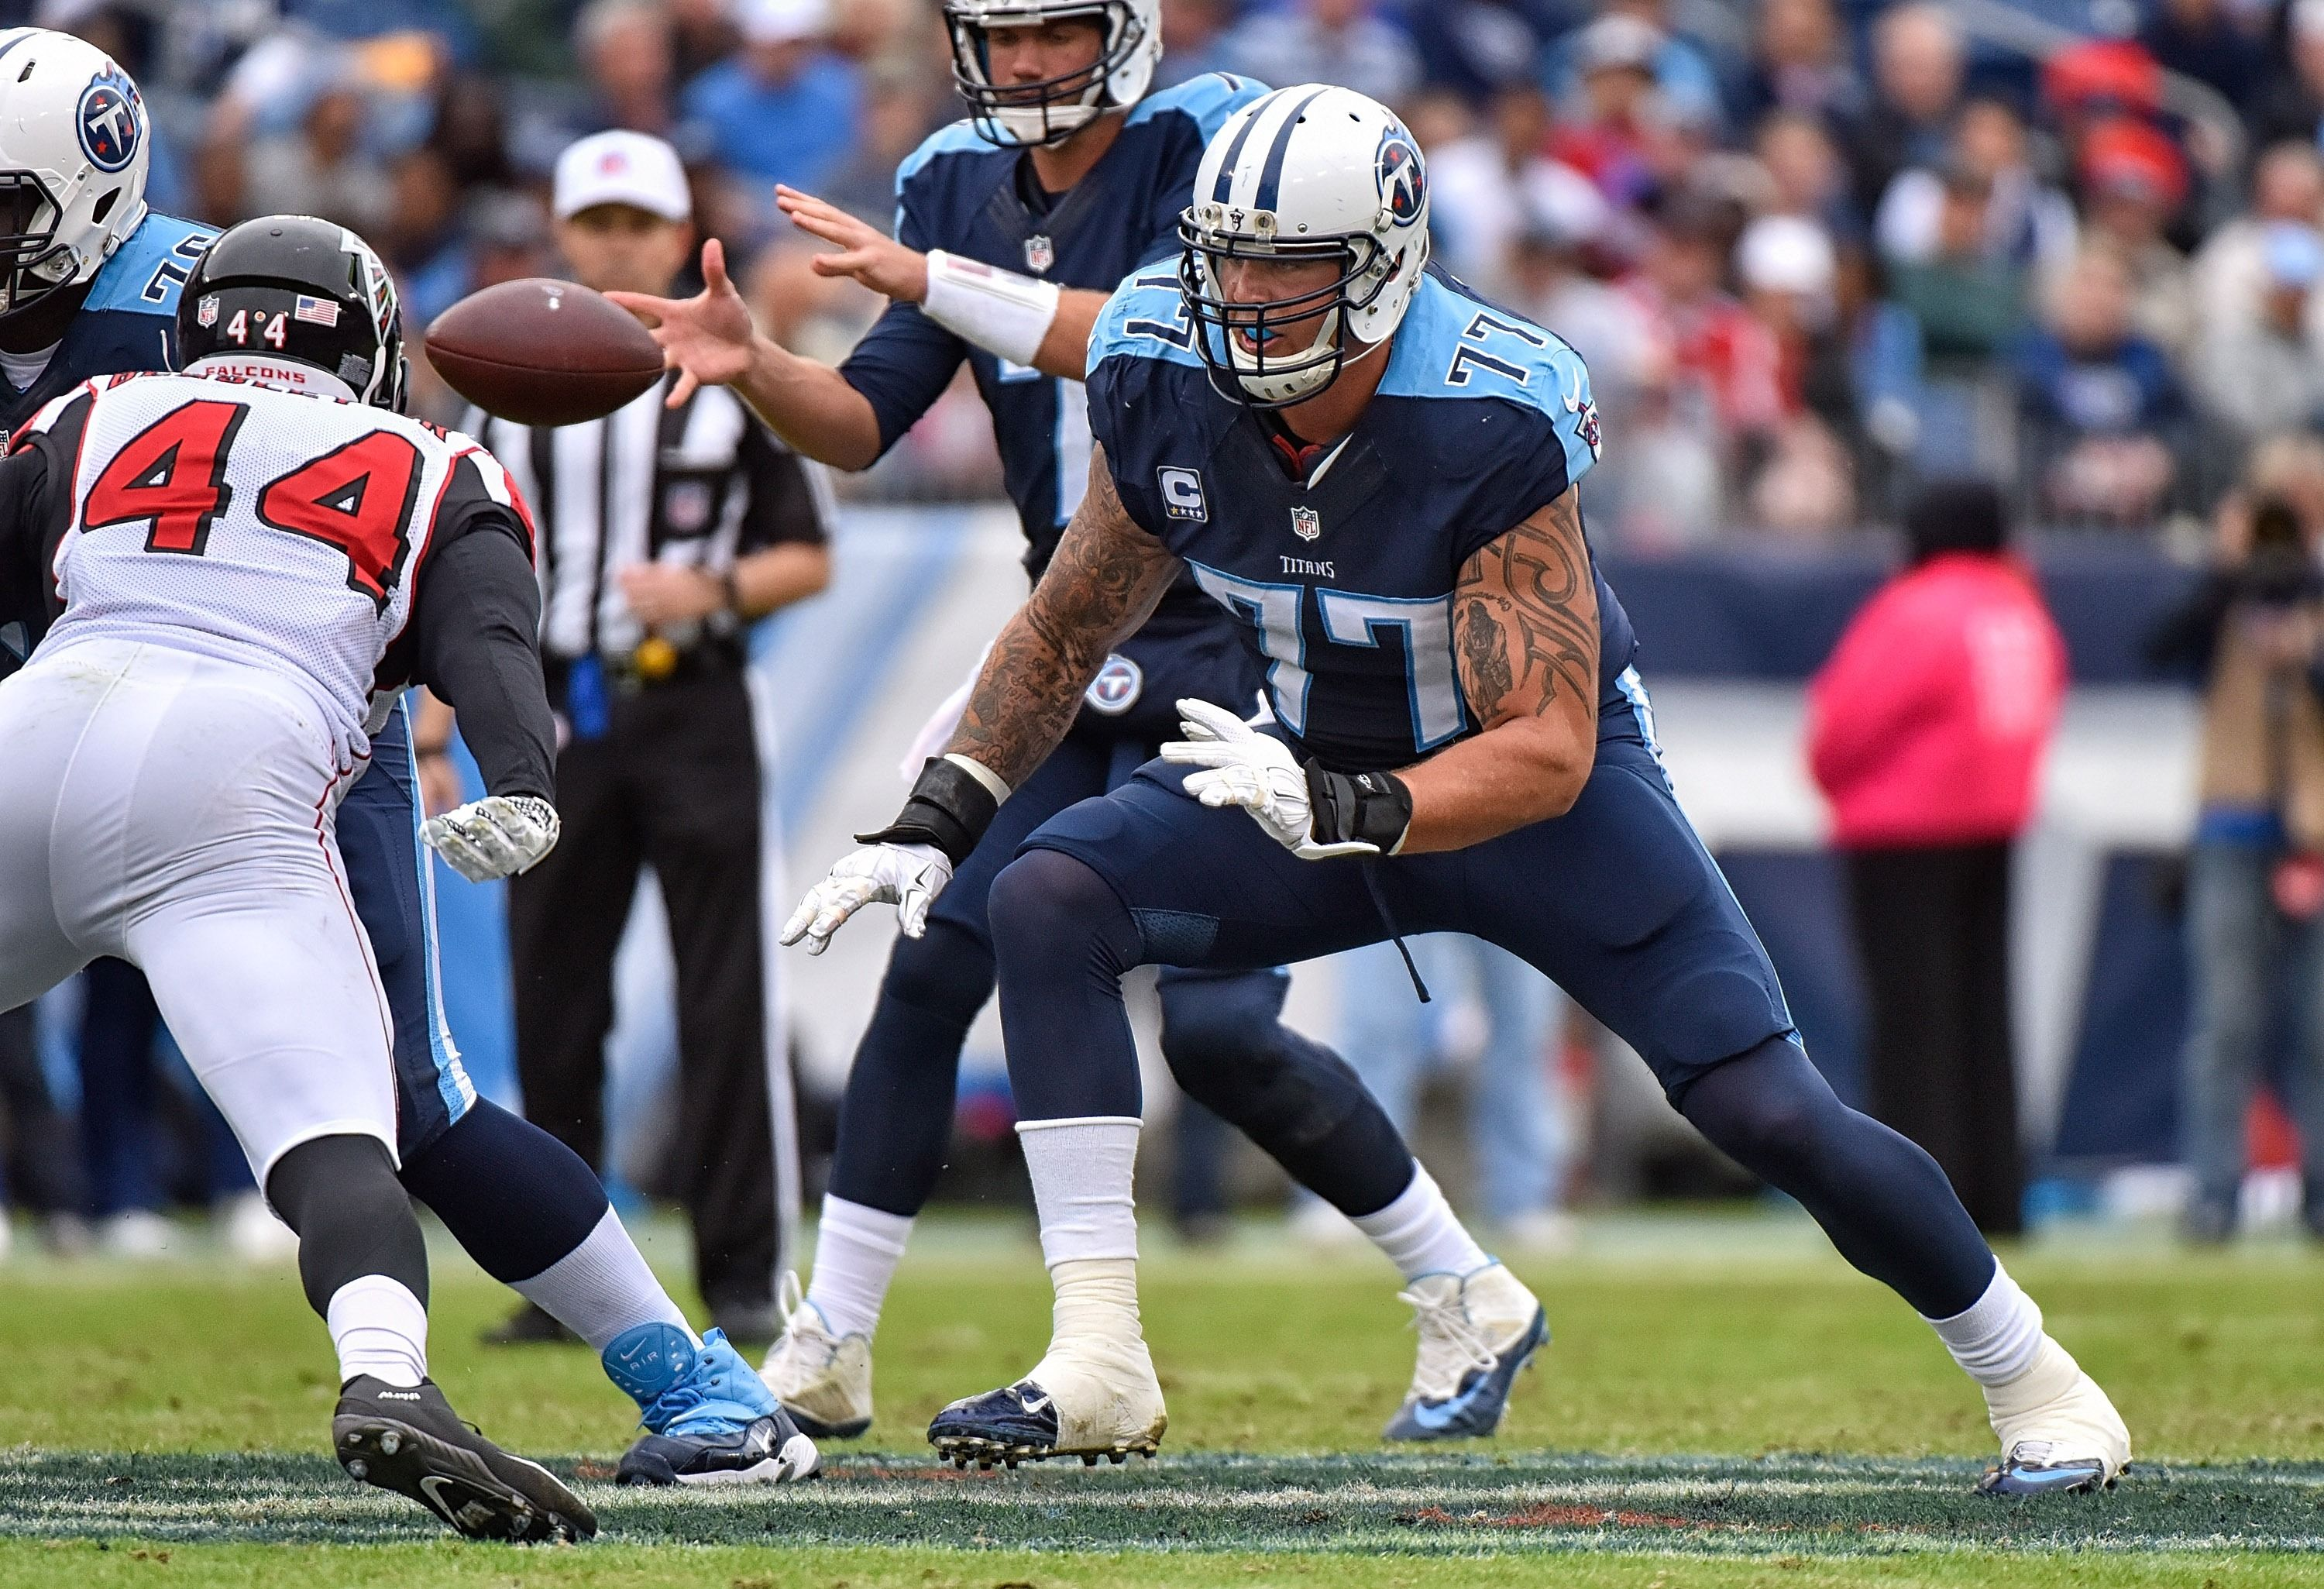 Tennessee Titans Football 2016 Nashville Tn October 25 Taylor Lewan 77 Of The Tennessee Titan Tennessee Titans Titans Football Tennessee Titans Football